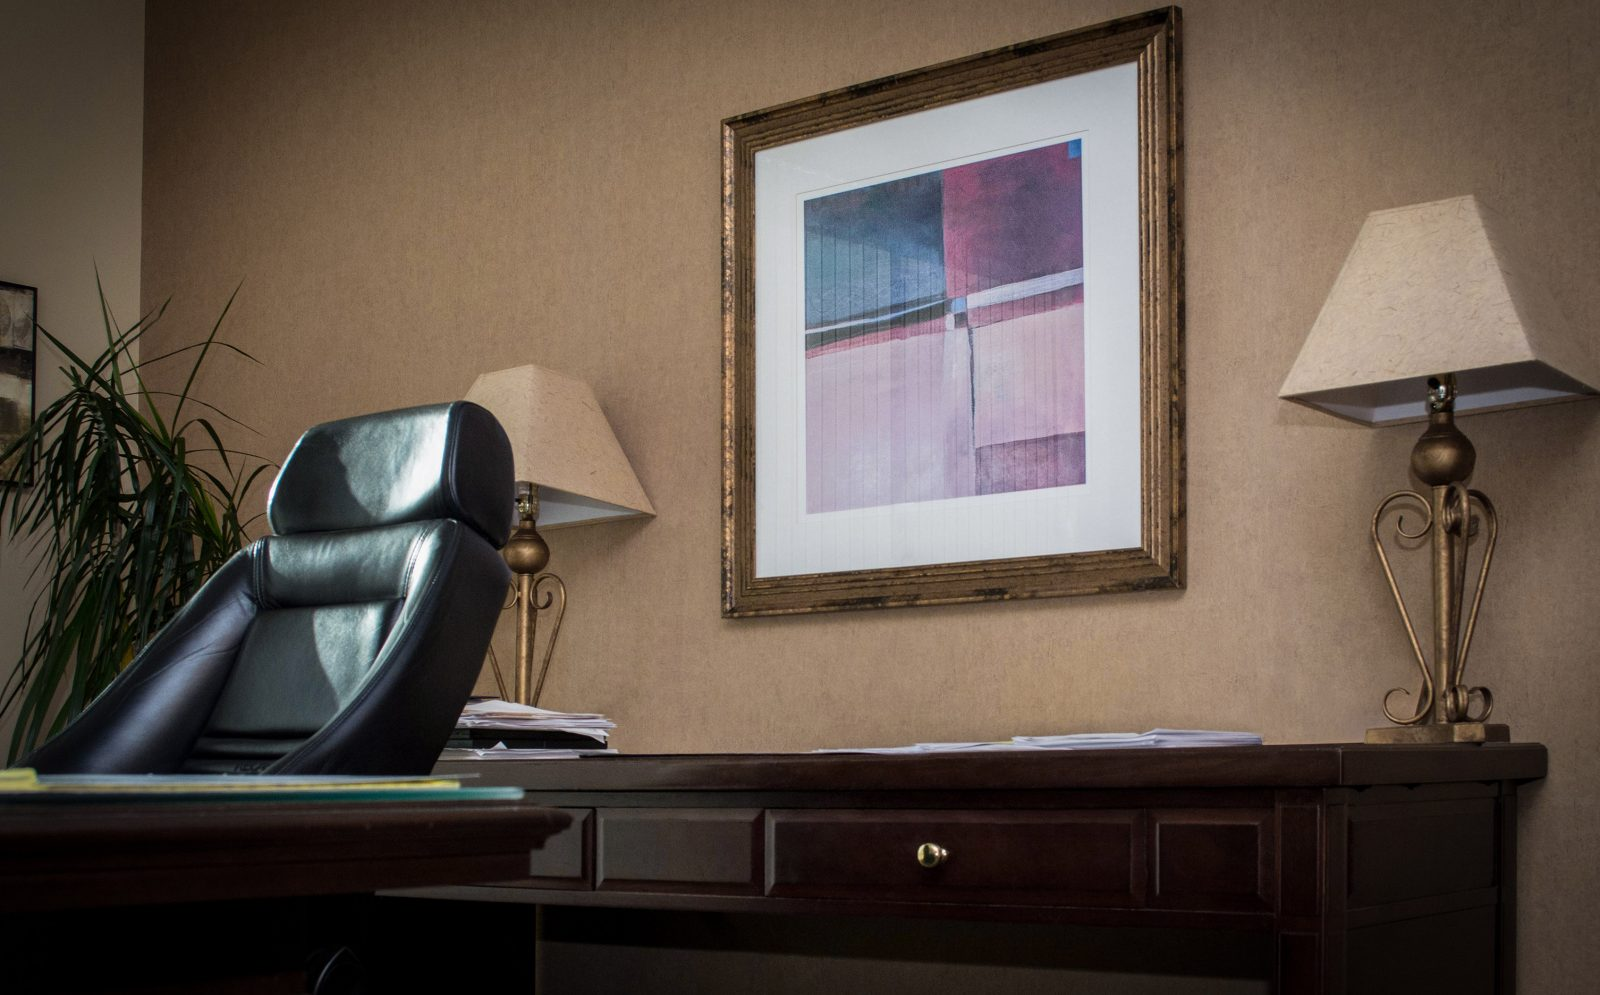 a framed painting on a desk between two lamps